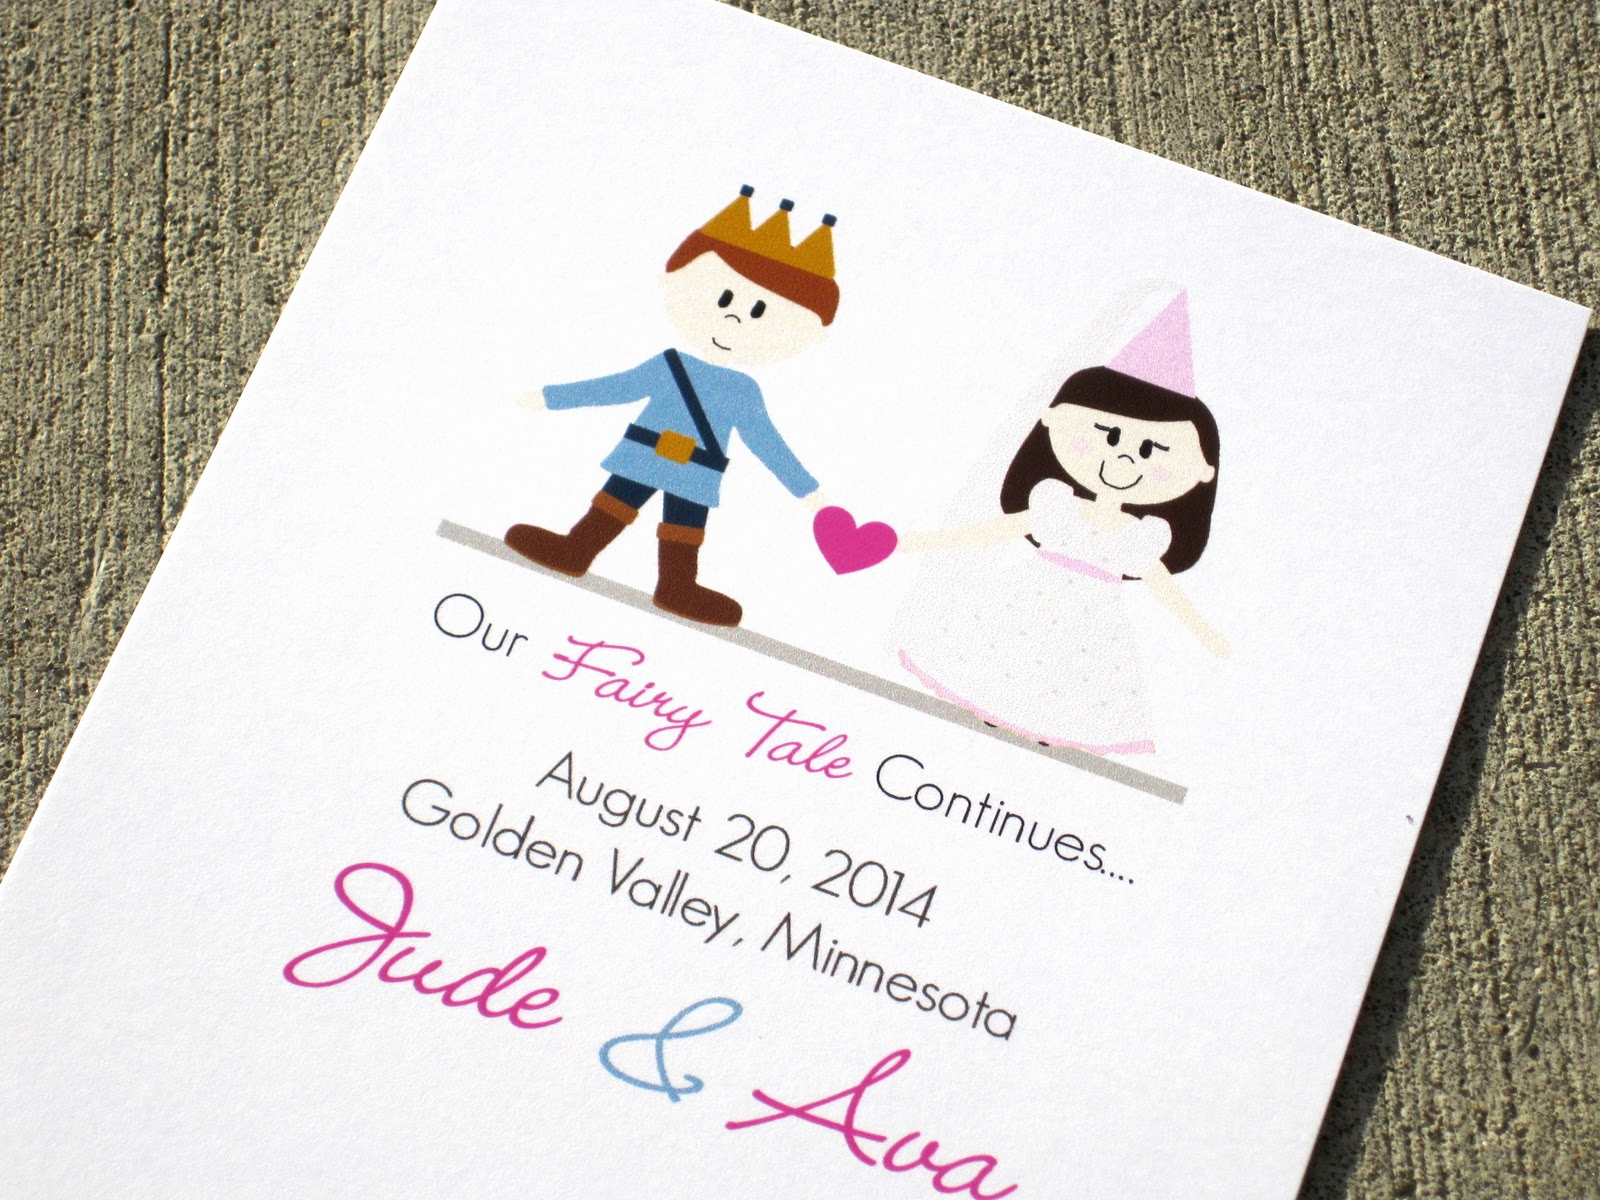 Cute Wedding Invitation Ideas Elegant Cute Quotes for Wedding Invitations Quotesgram